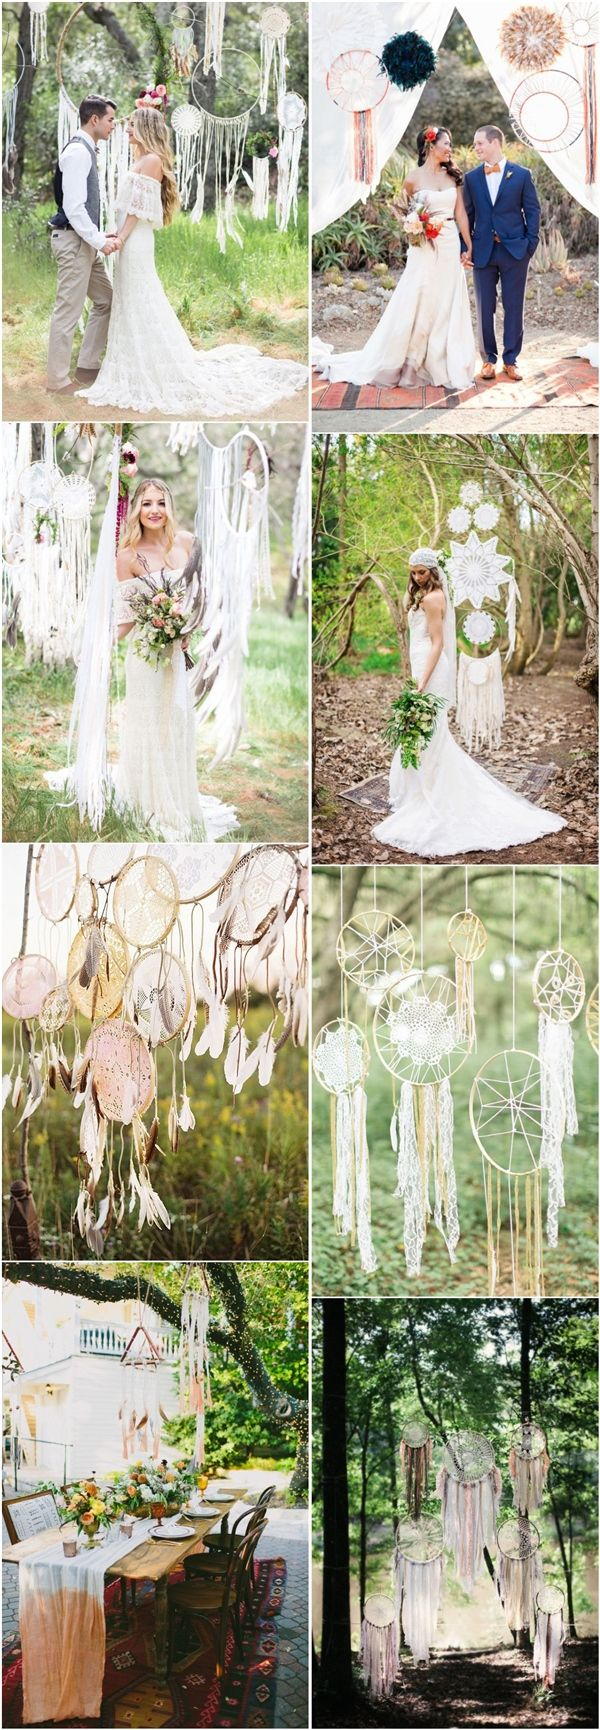 dreamcatchers boho wedding decor ideas boho wedding